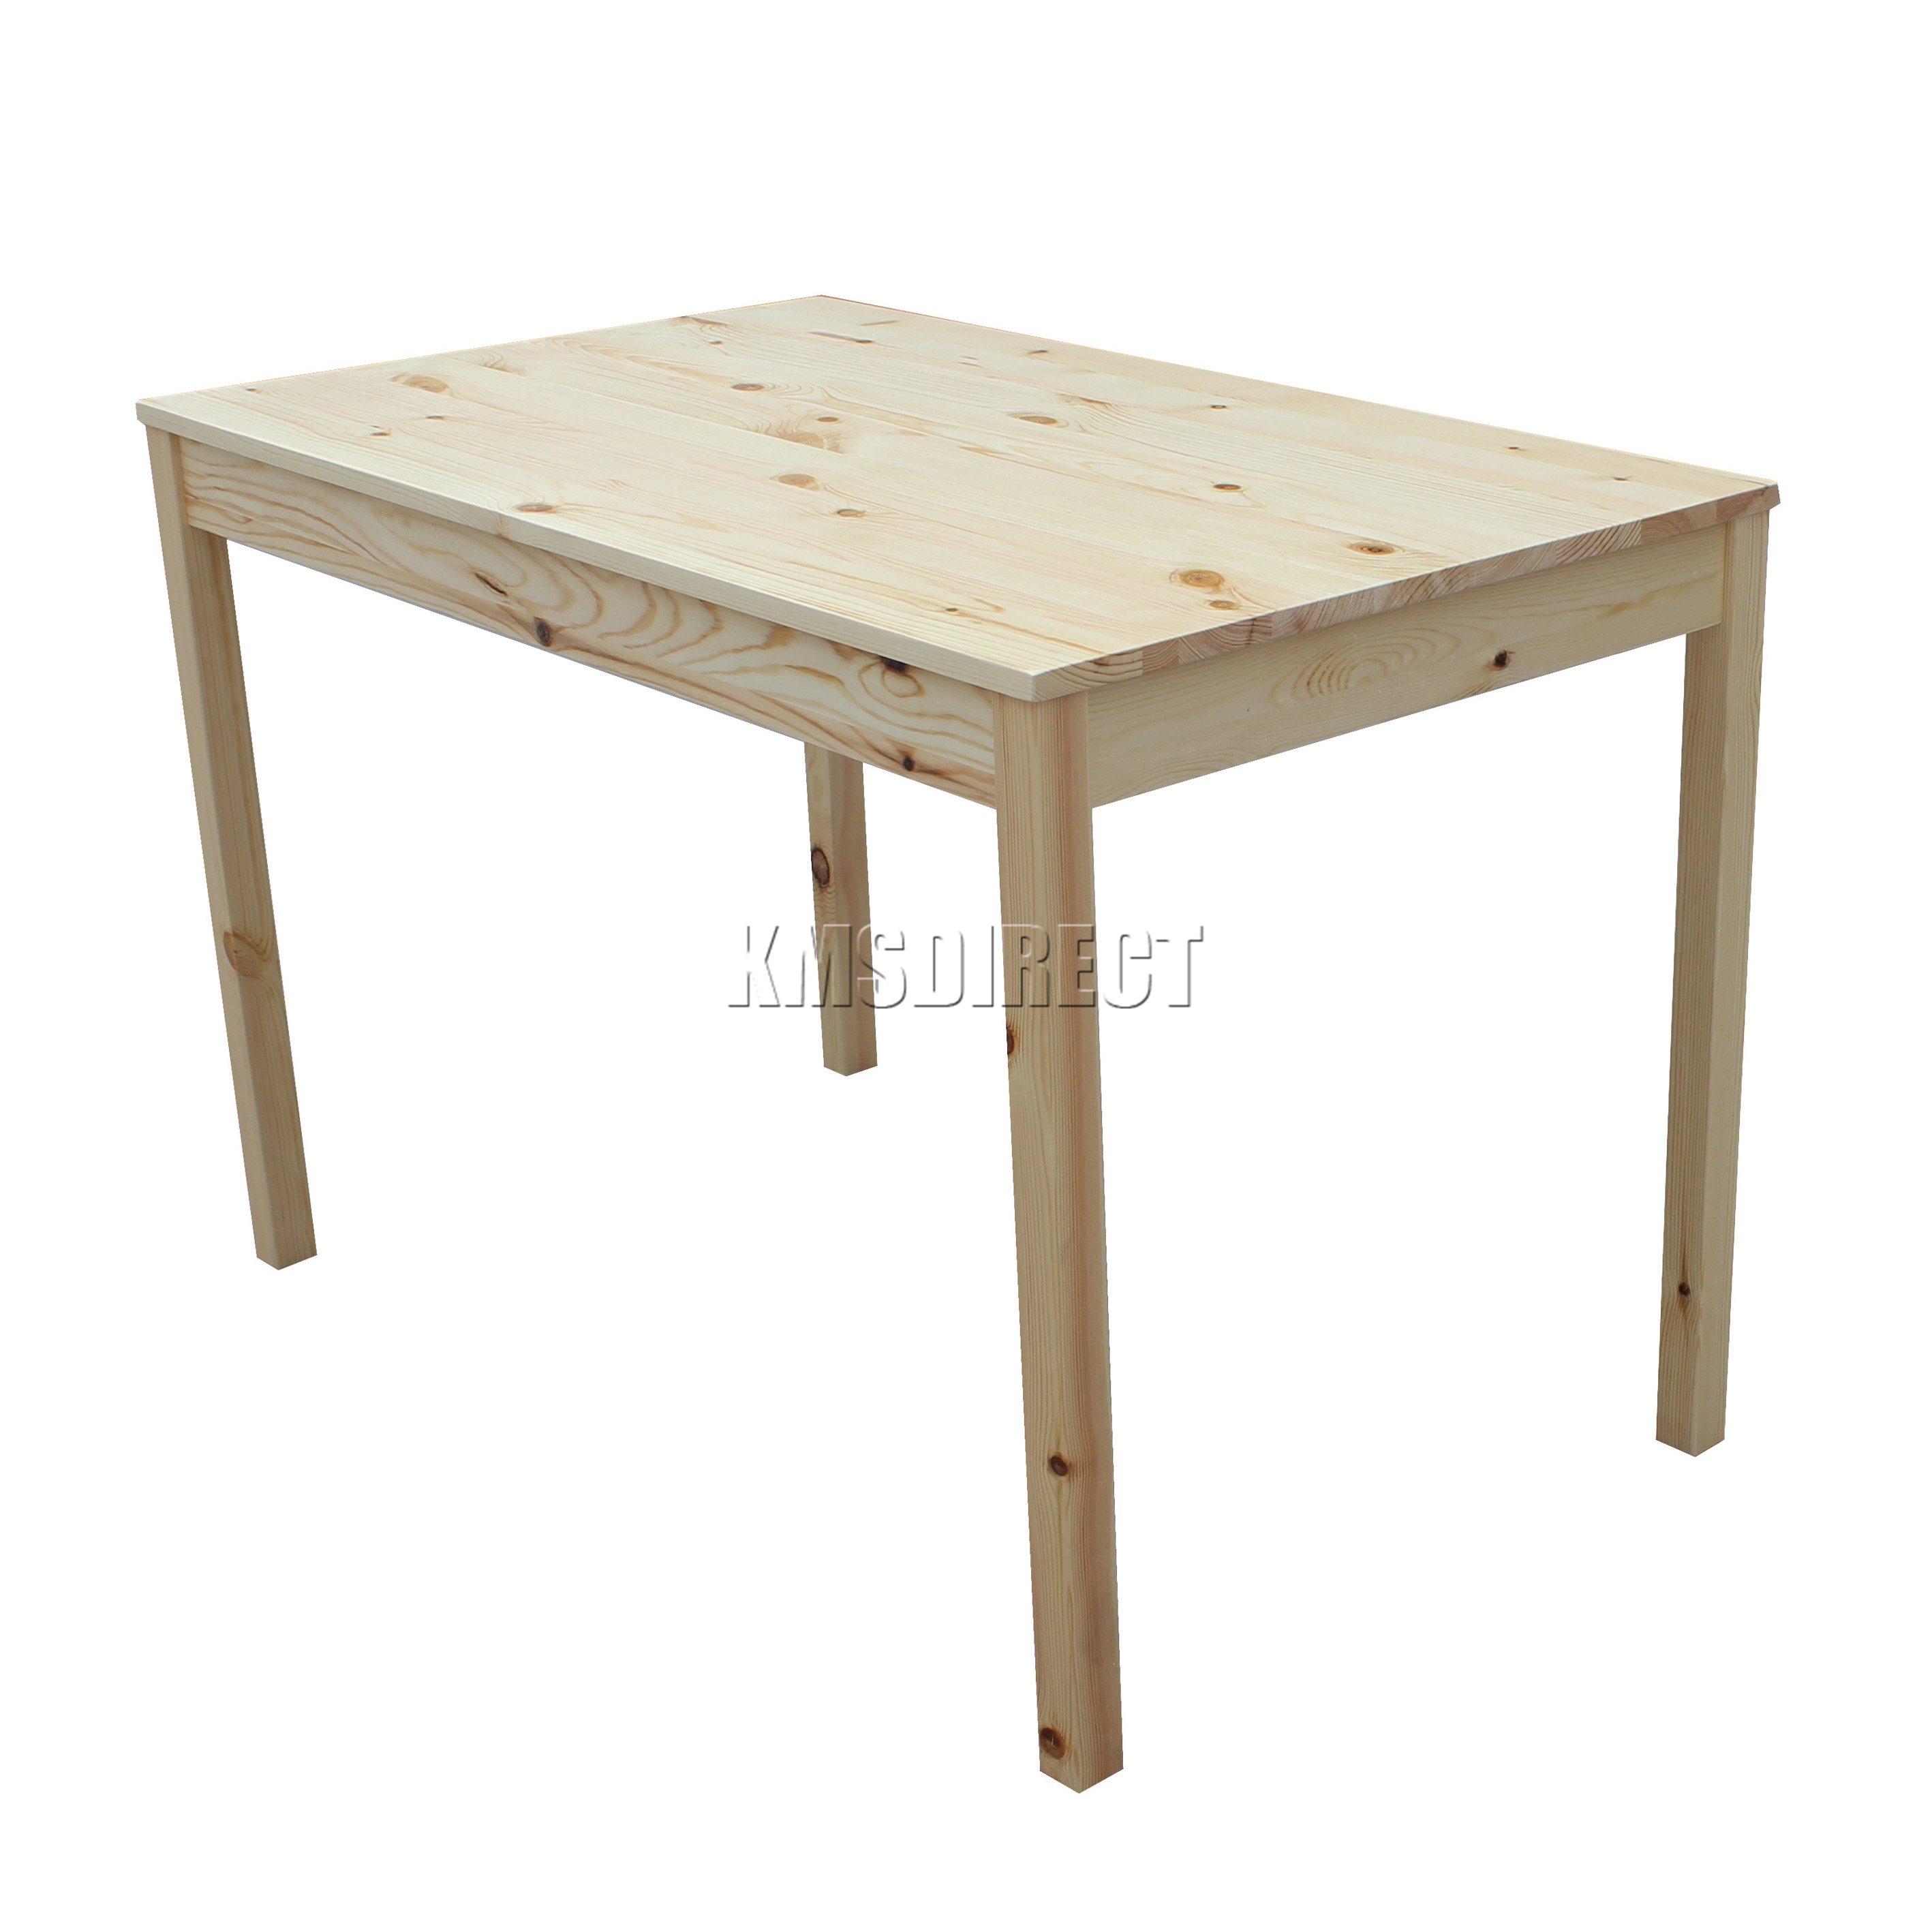 Solid Wood Kitchen Table With Bench: FoxHunter Solid Wooden Dining Table With 4 Chairs Set